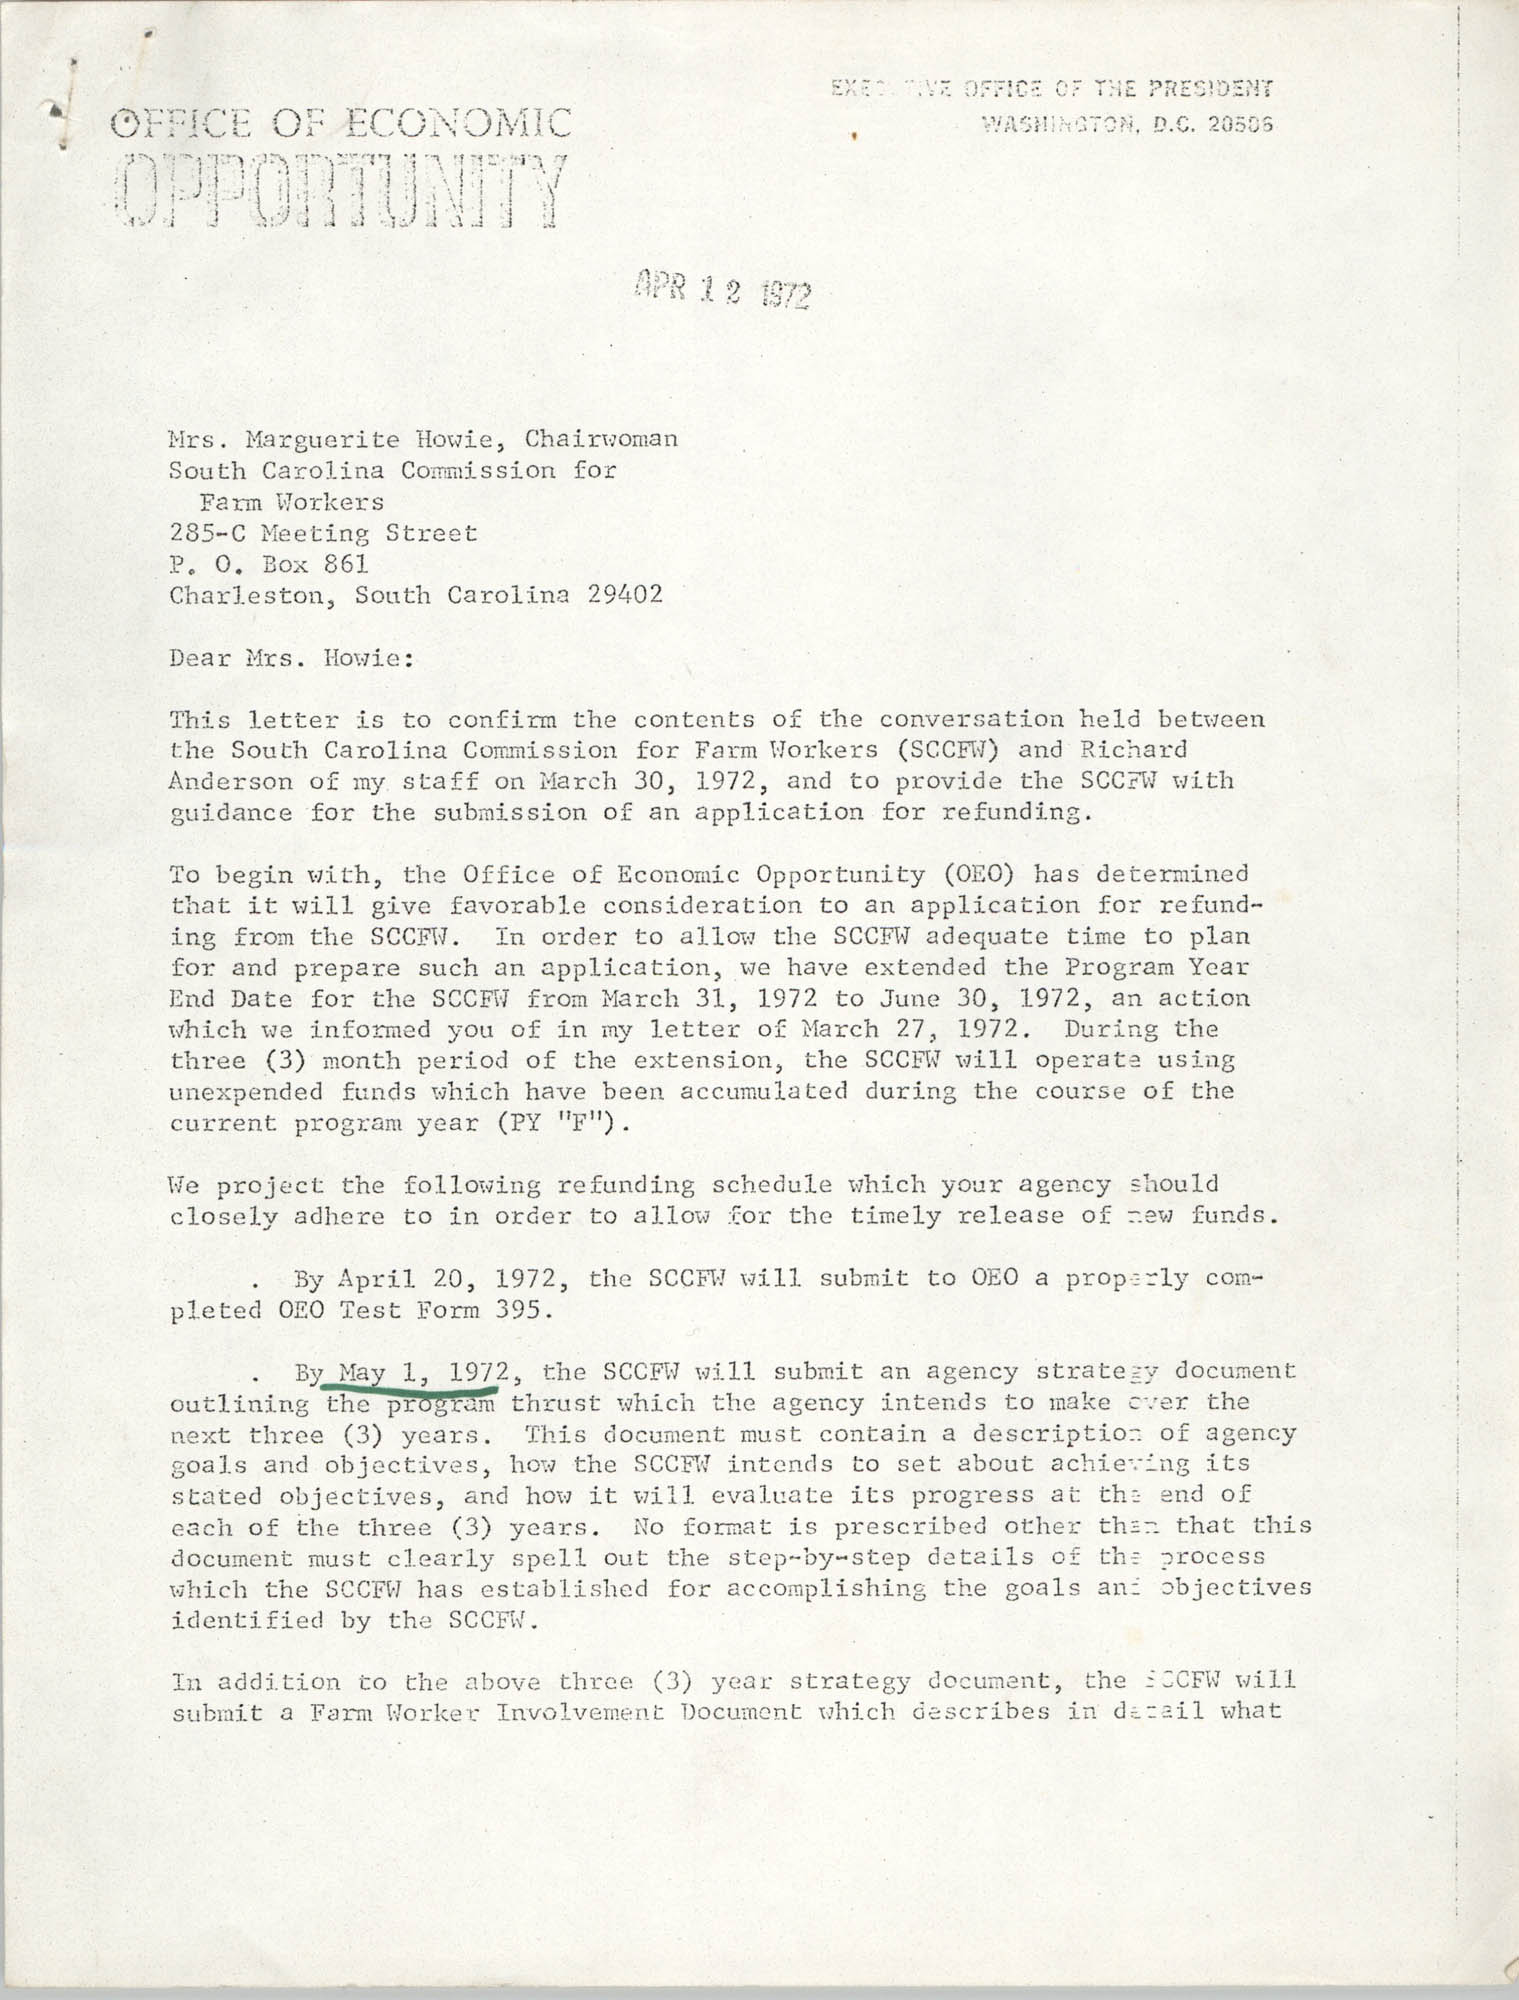 Letter from Pete M. Mirelez to Marguerite Howie, April 12, 1972